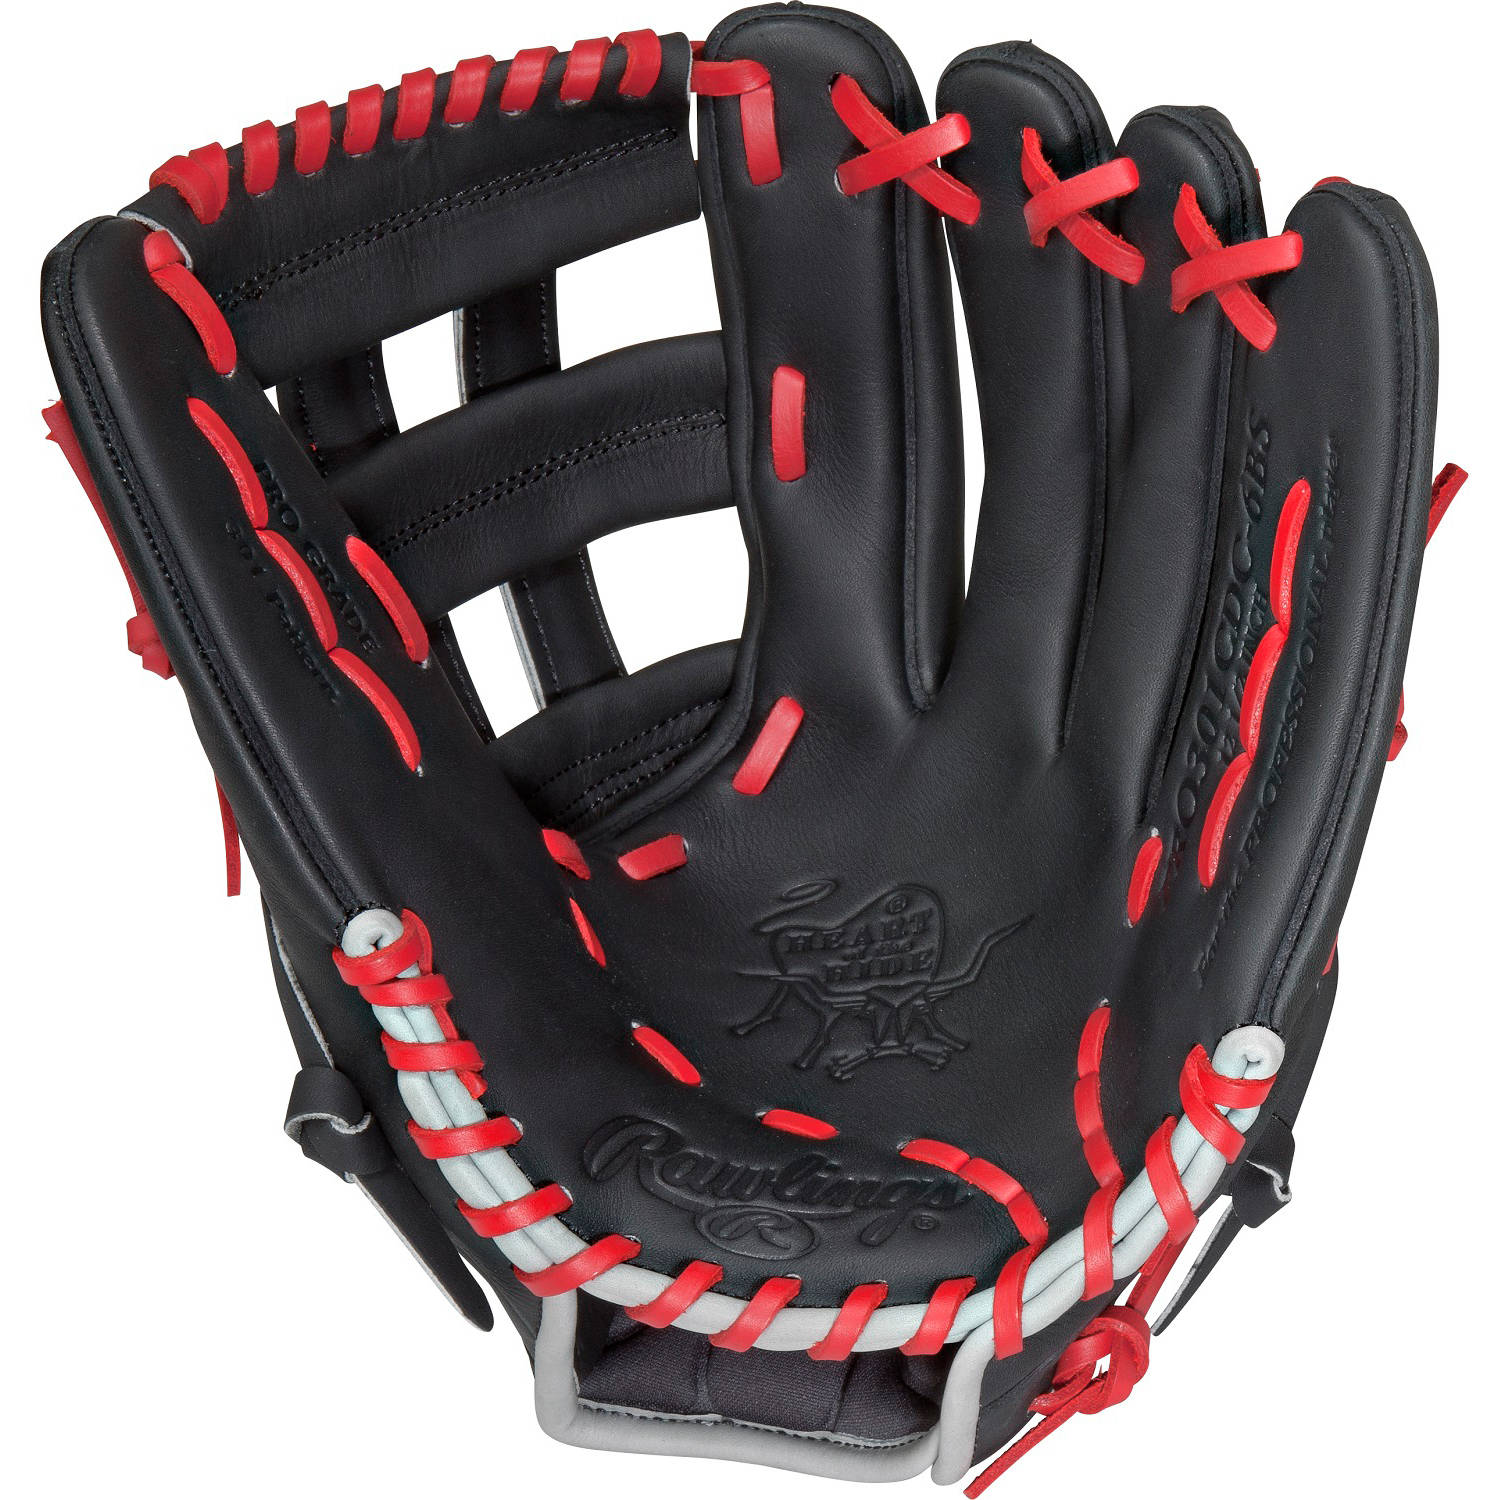 "Rawlings Heart of the Hide Dual Core 12.5"" OF Glove"